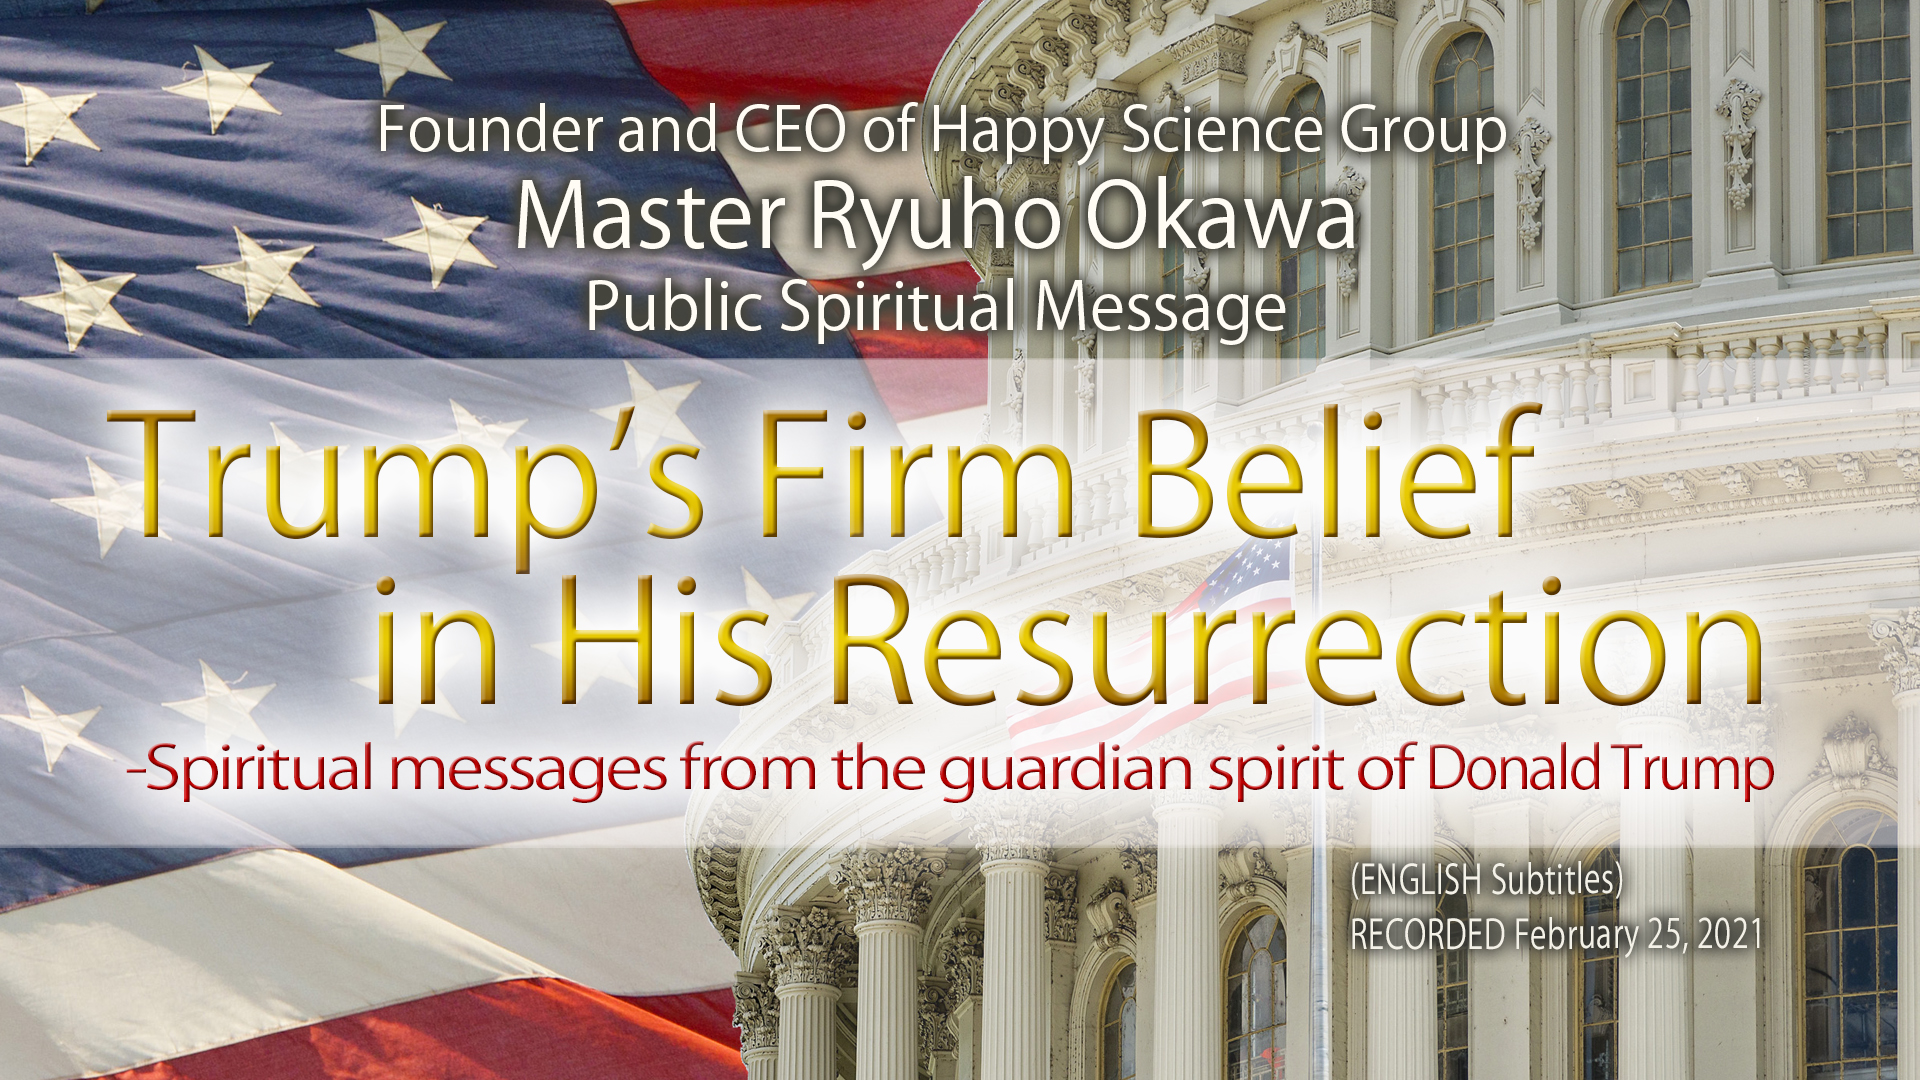 Trump's Firm Belief in His Resurrection—Spiritual messages from the guardian spirit of Donald Trump